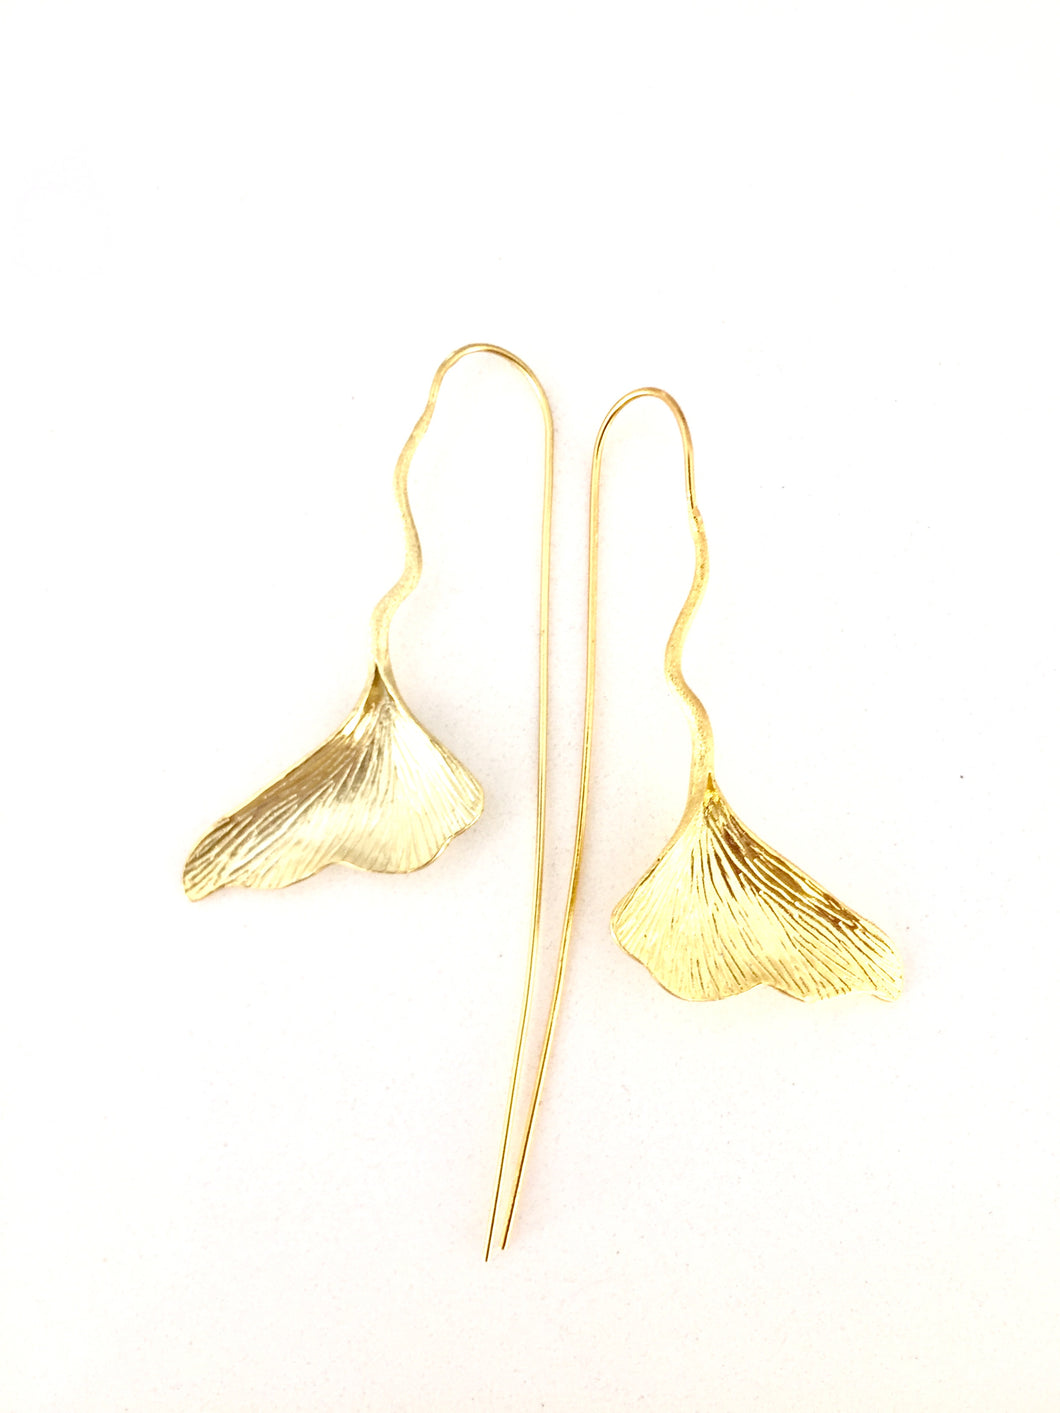 KRINOS- STERLING SILVER/GOLD PLATED  EARRINGS